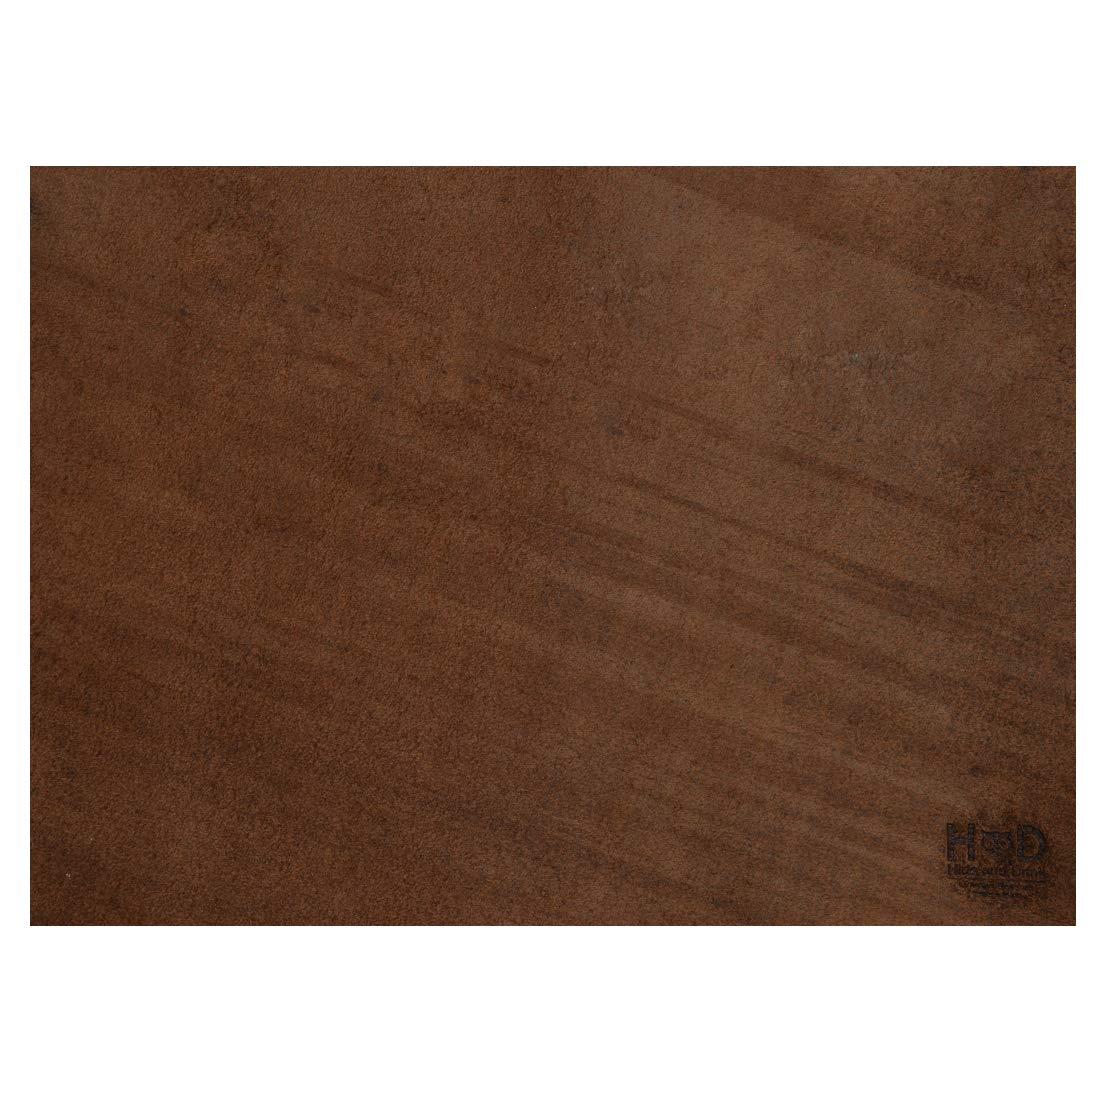 Heavy Weight by Hide /& Drink :: Bourbon Brown 3.5mm 10x18 Thick Leather Square for Crafts//Tooling//Hobby Workshop